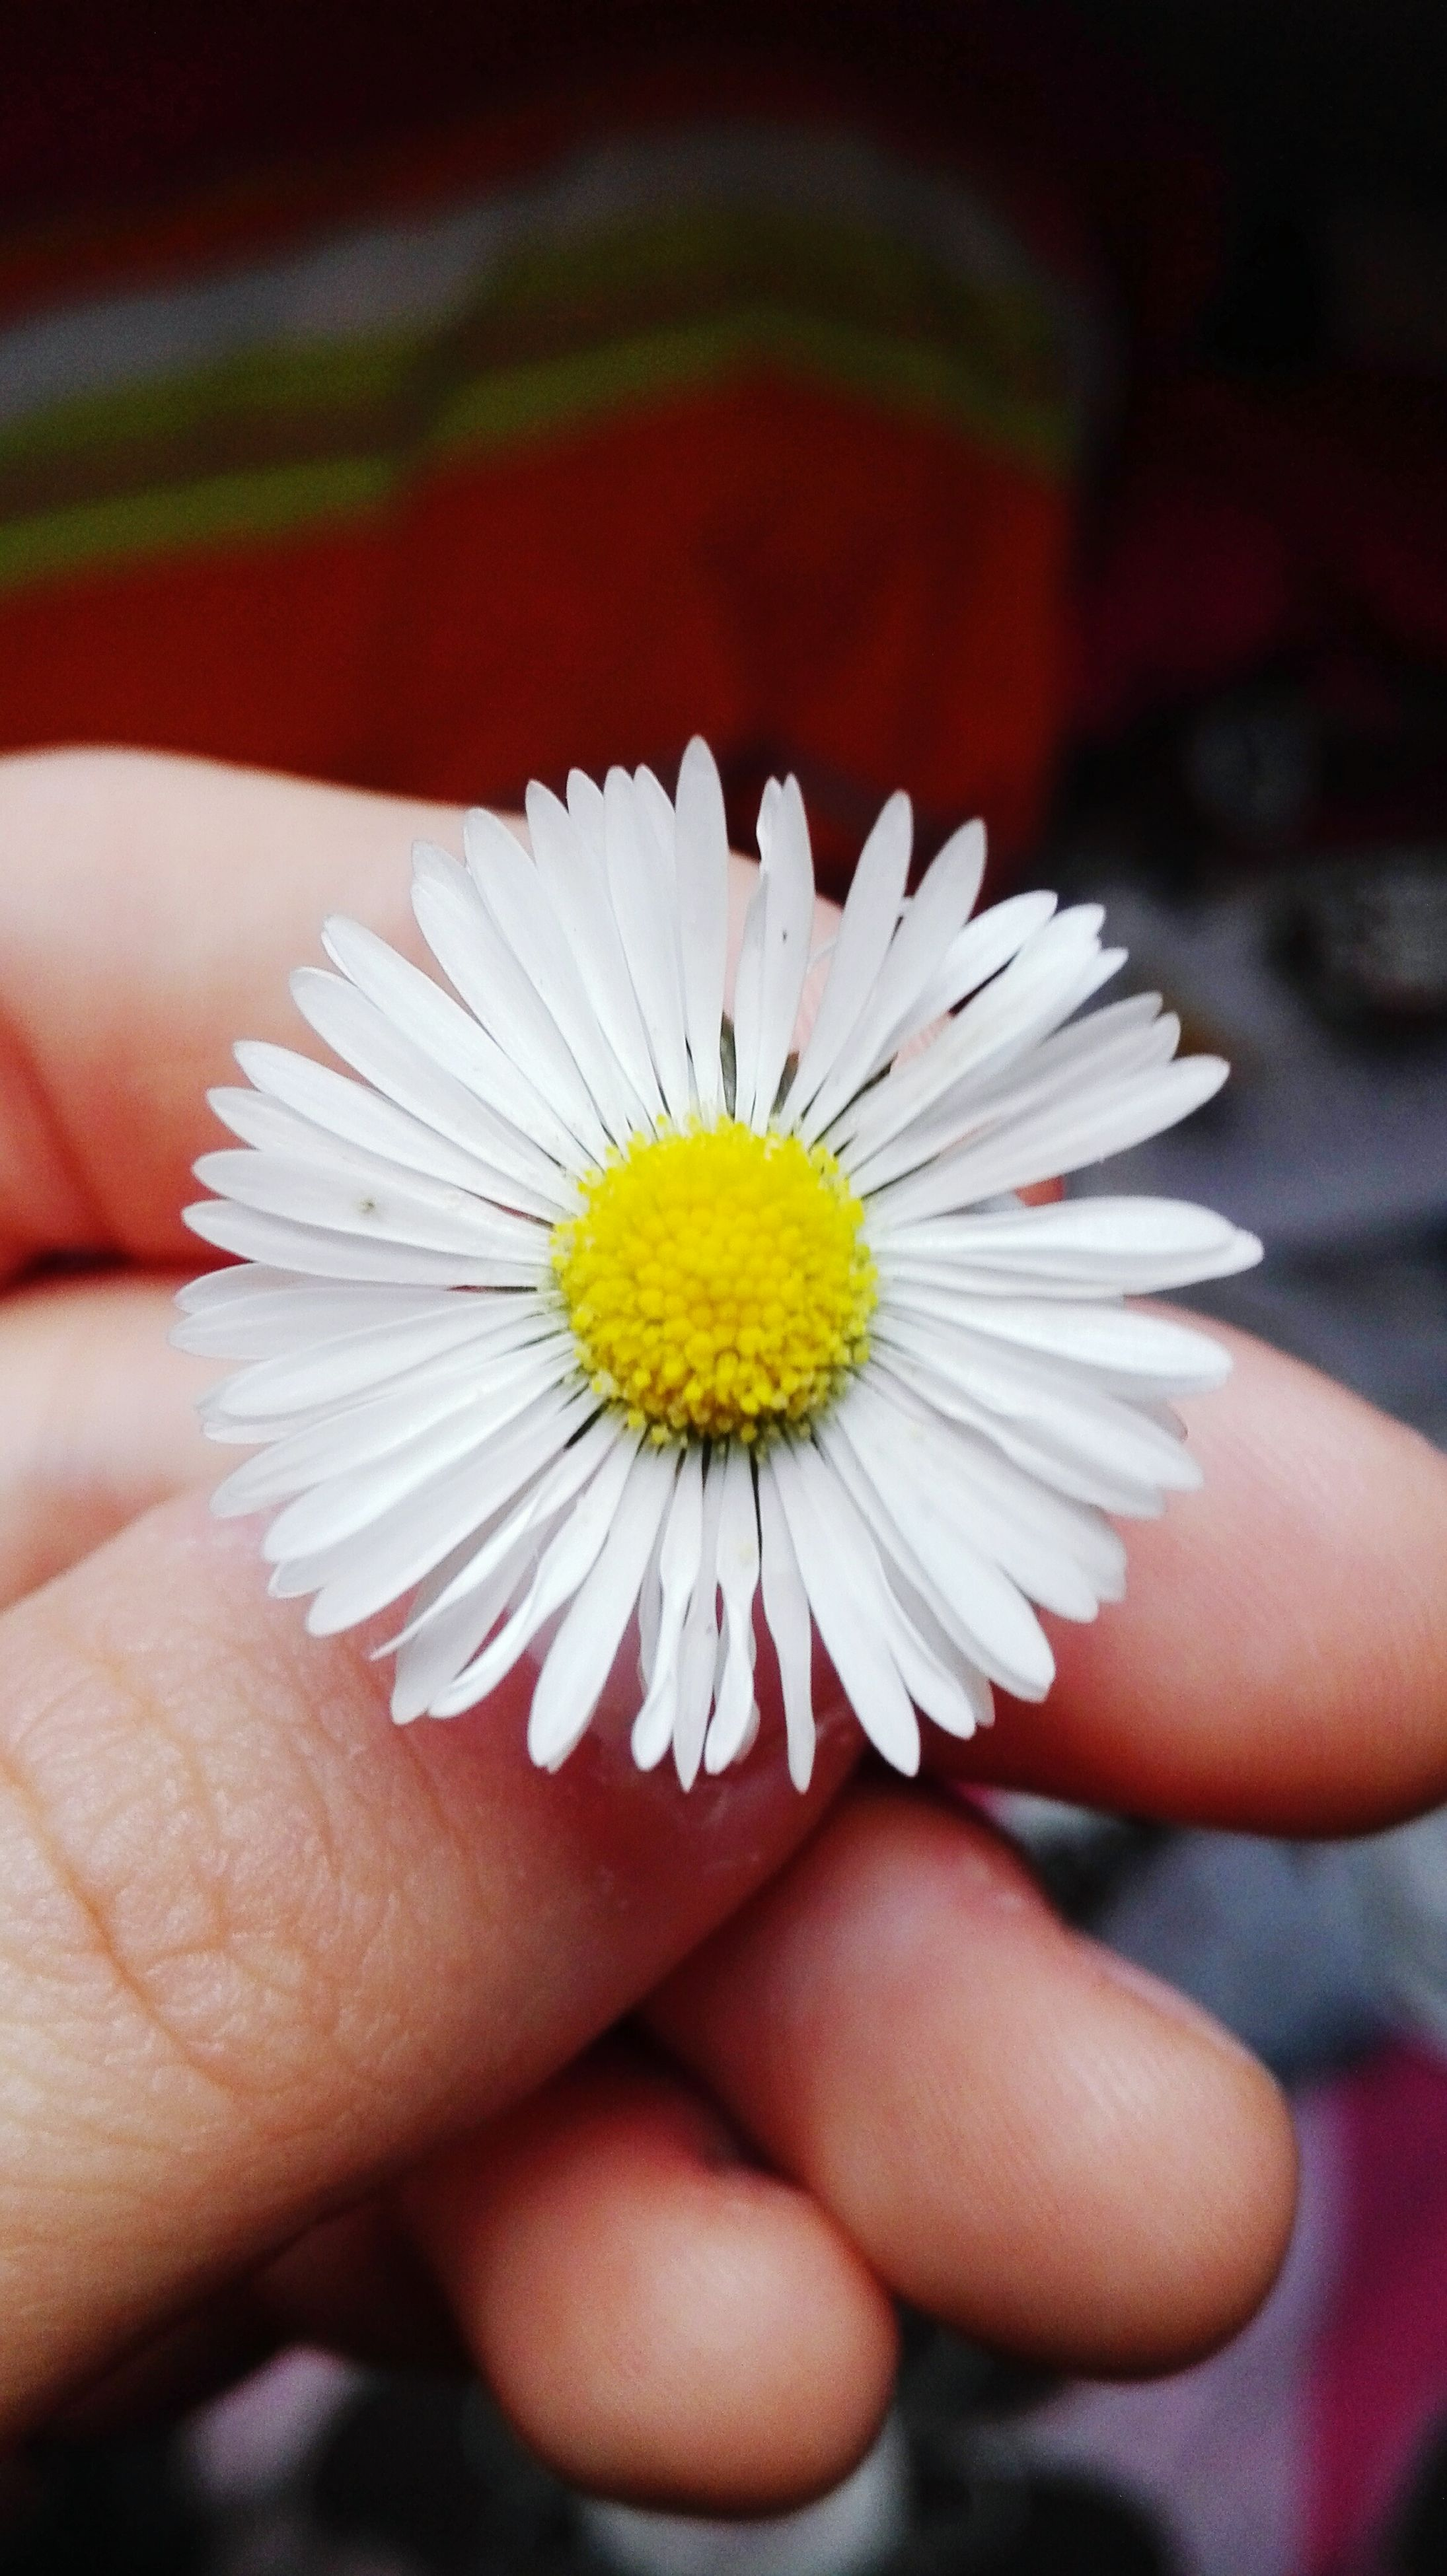 human hand, flower, close-up, freshness, one person, fragility, petal, human body part, real people, flower head, lifestyles, holding, beauty in nature, outdoors, nature, day, people